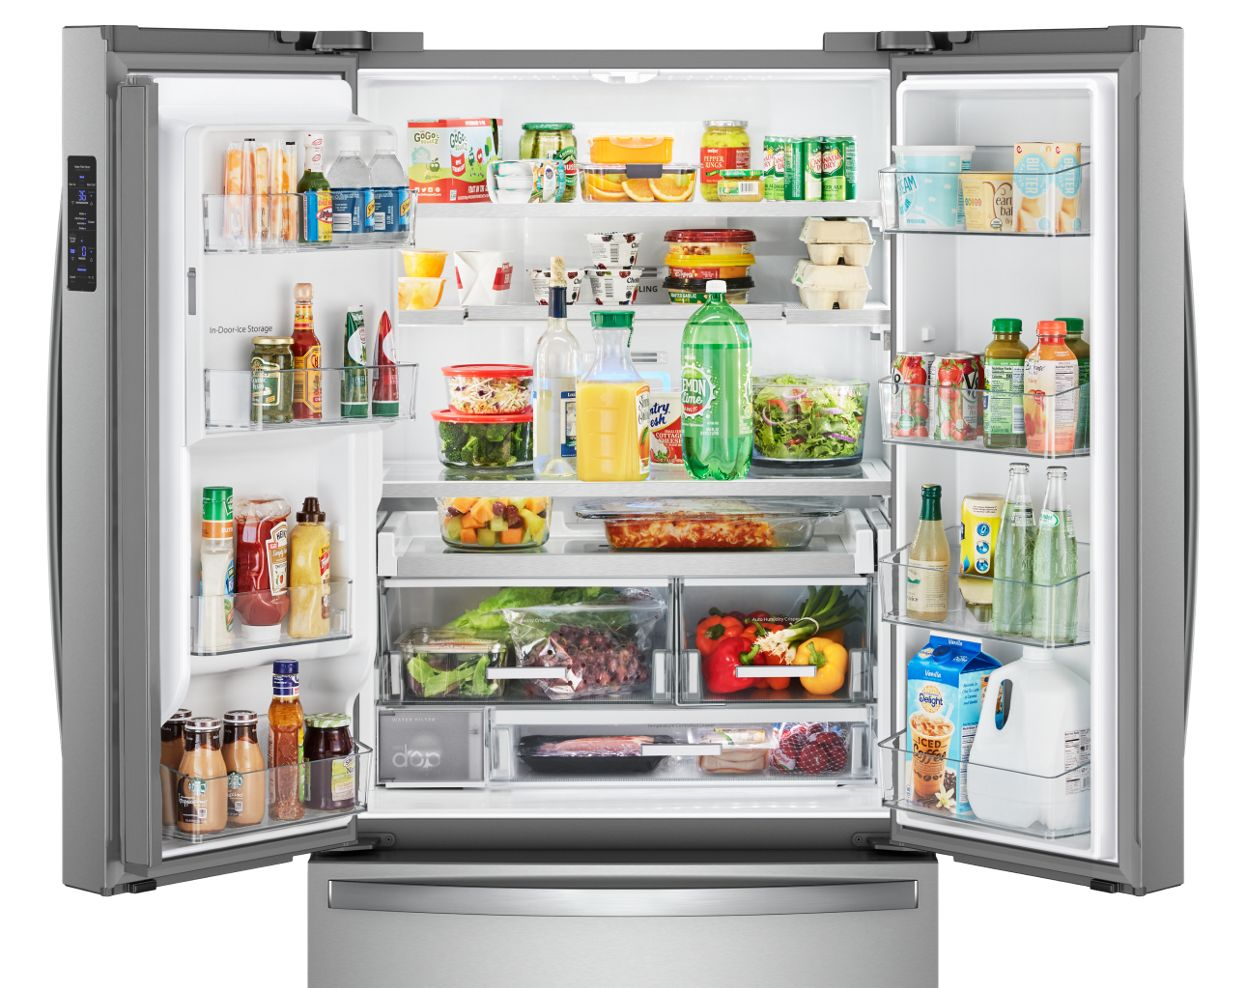 Refrigeration Whirlpool Refrigerator Parts Diagram On Compressor At Our French Door Selection Lets You Choose The Best For Your Home